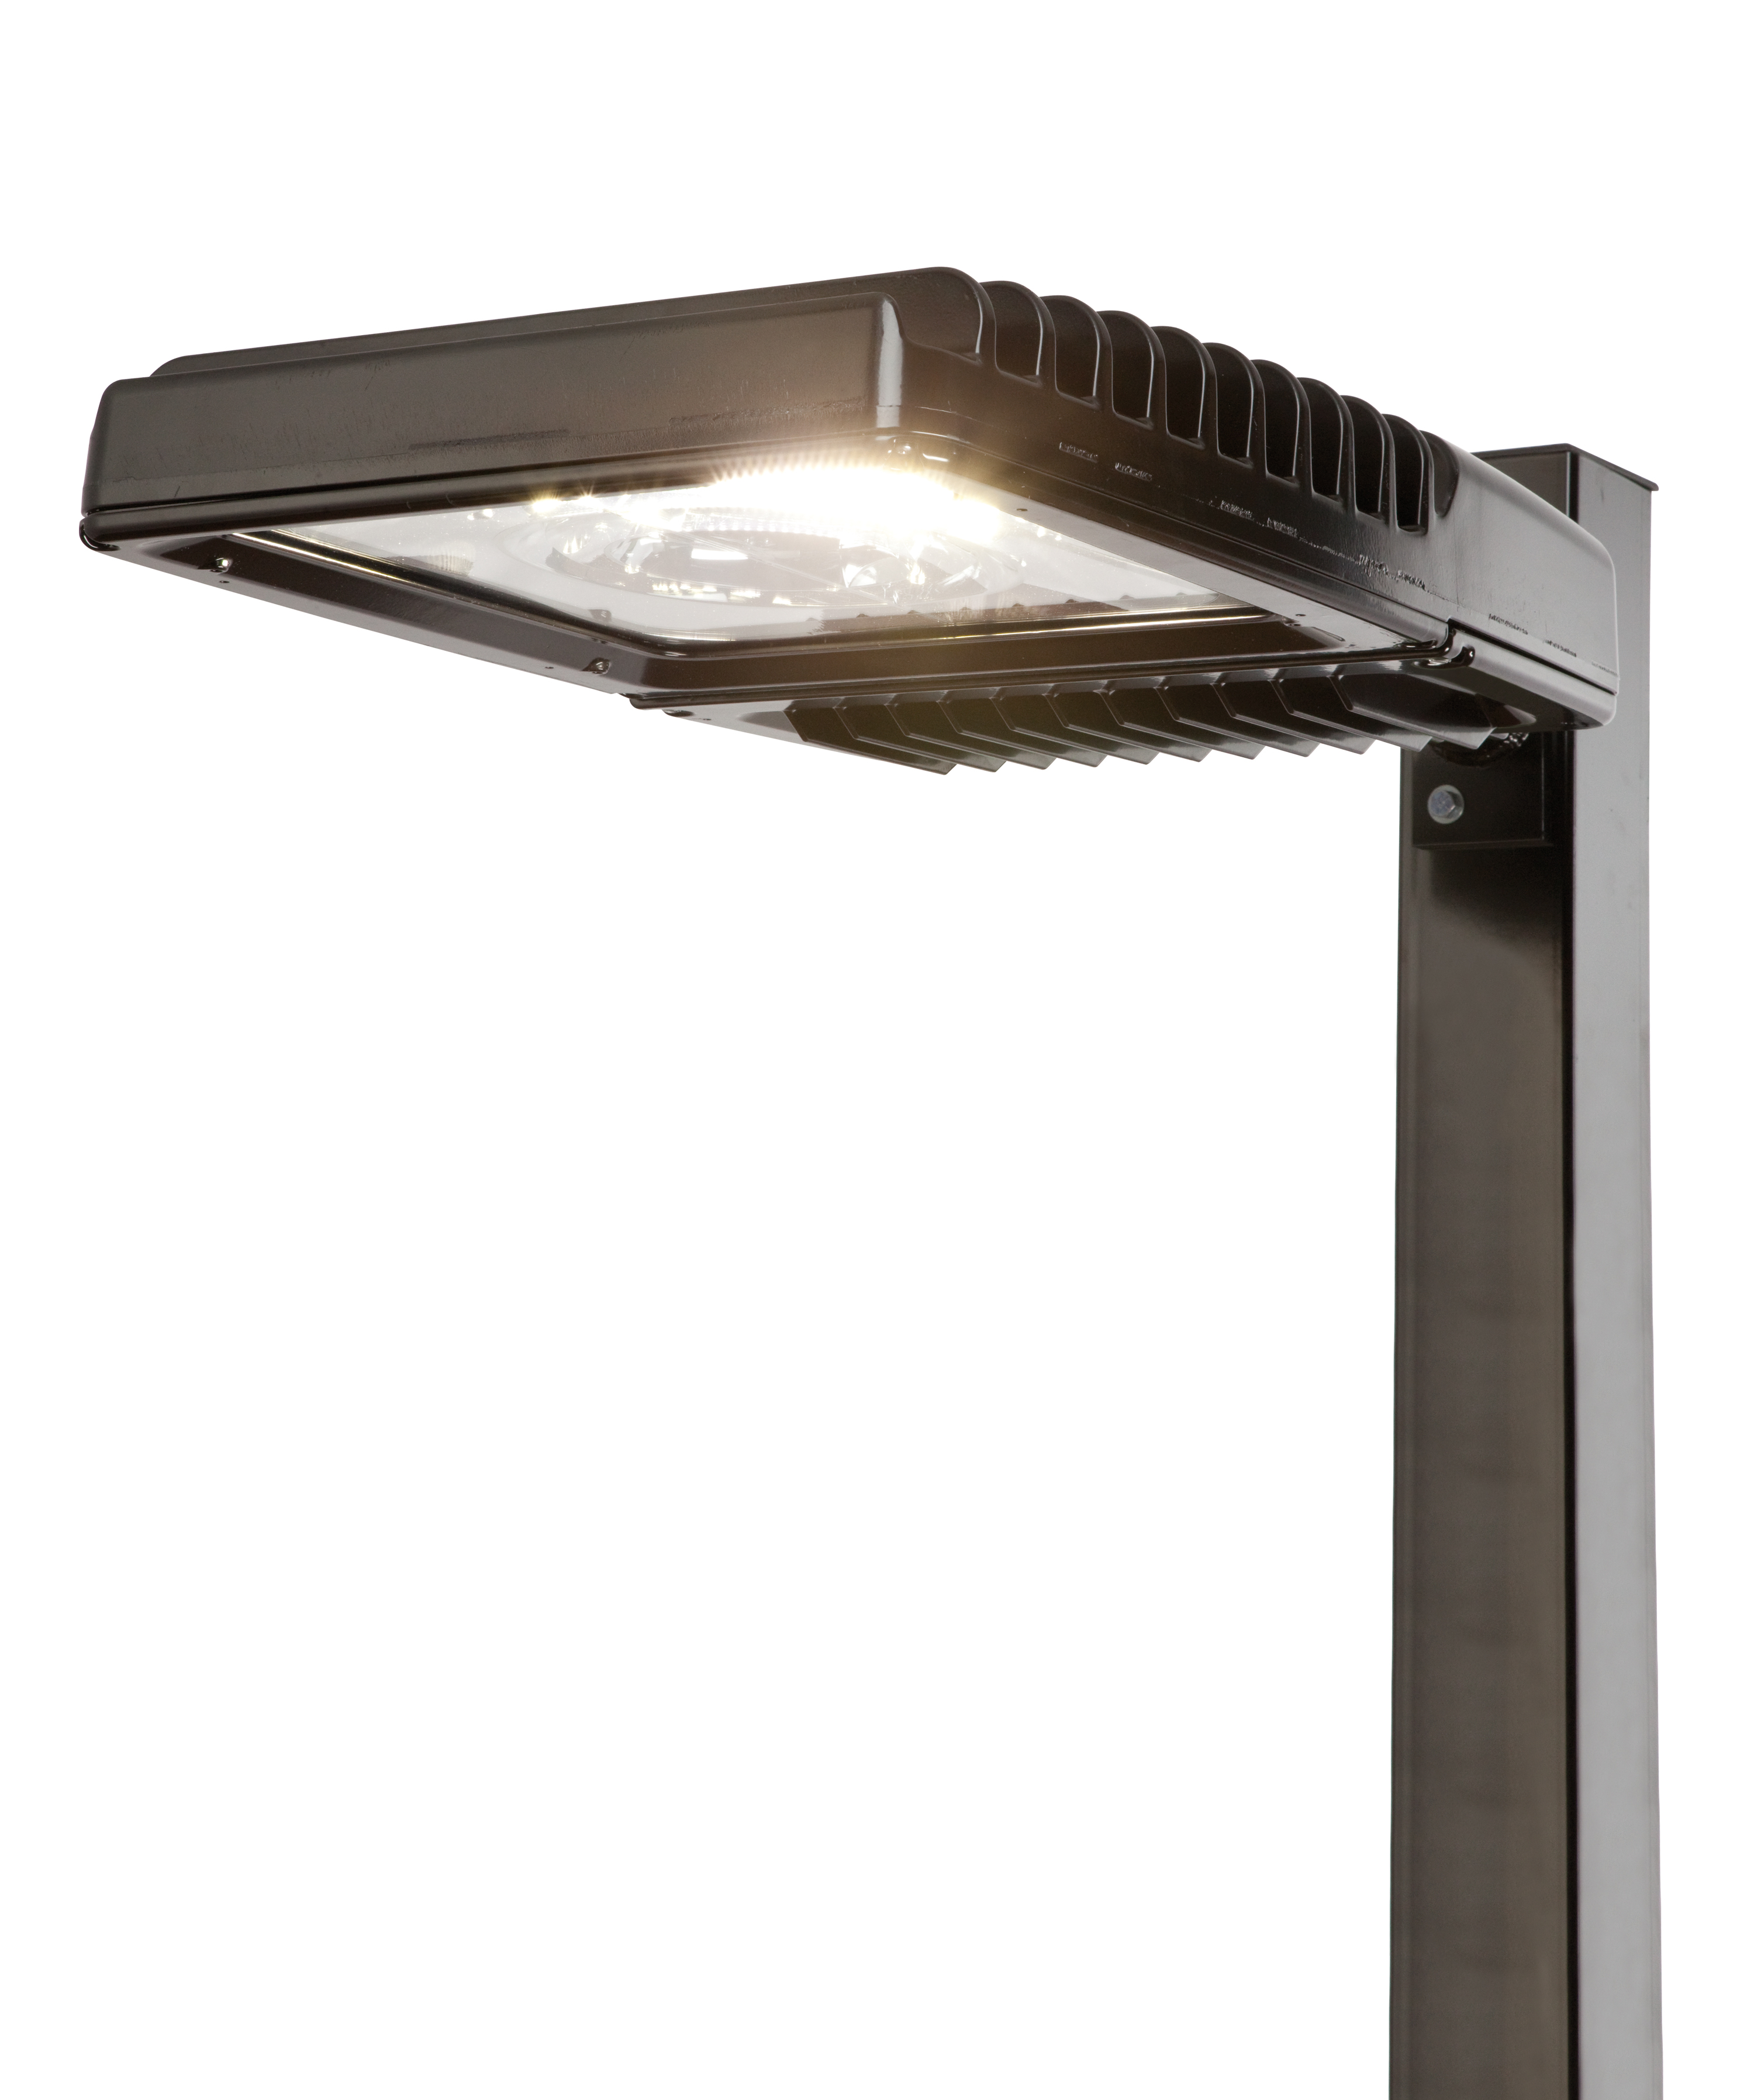 GE's Scalable LED Area Lights Bring Lots Of Options For